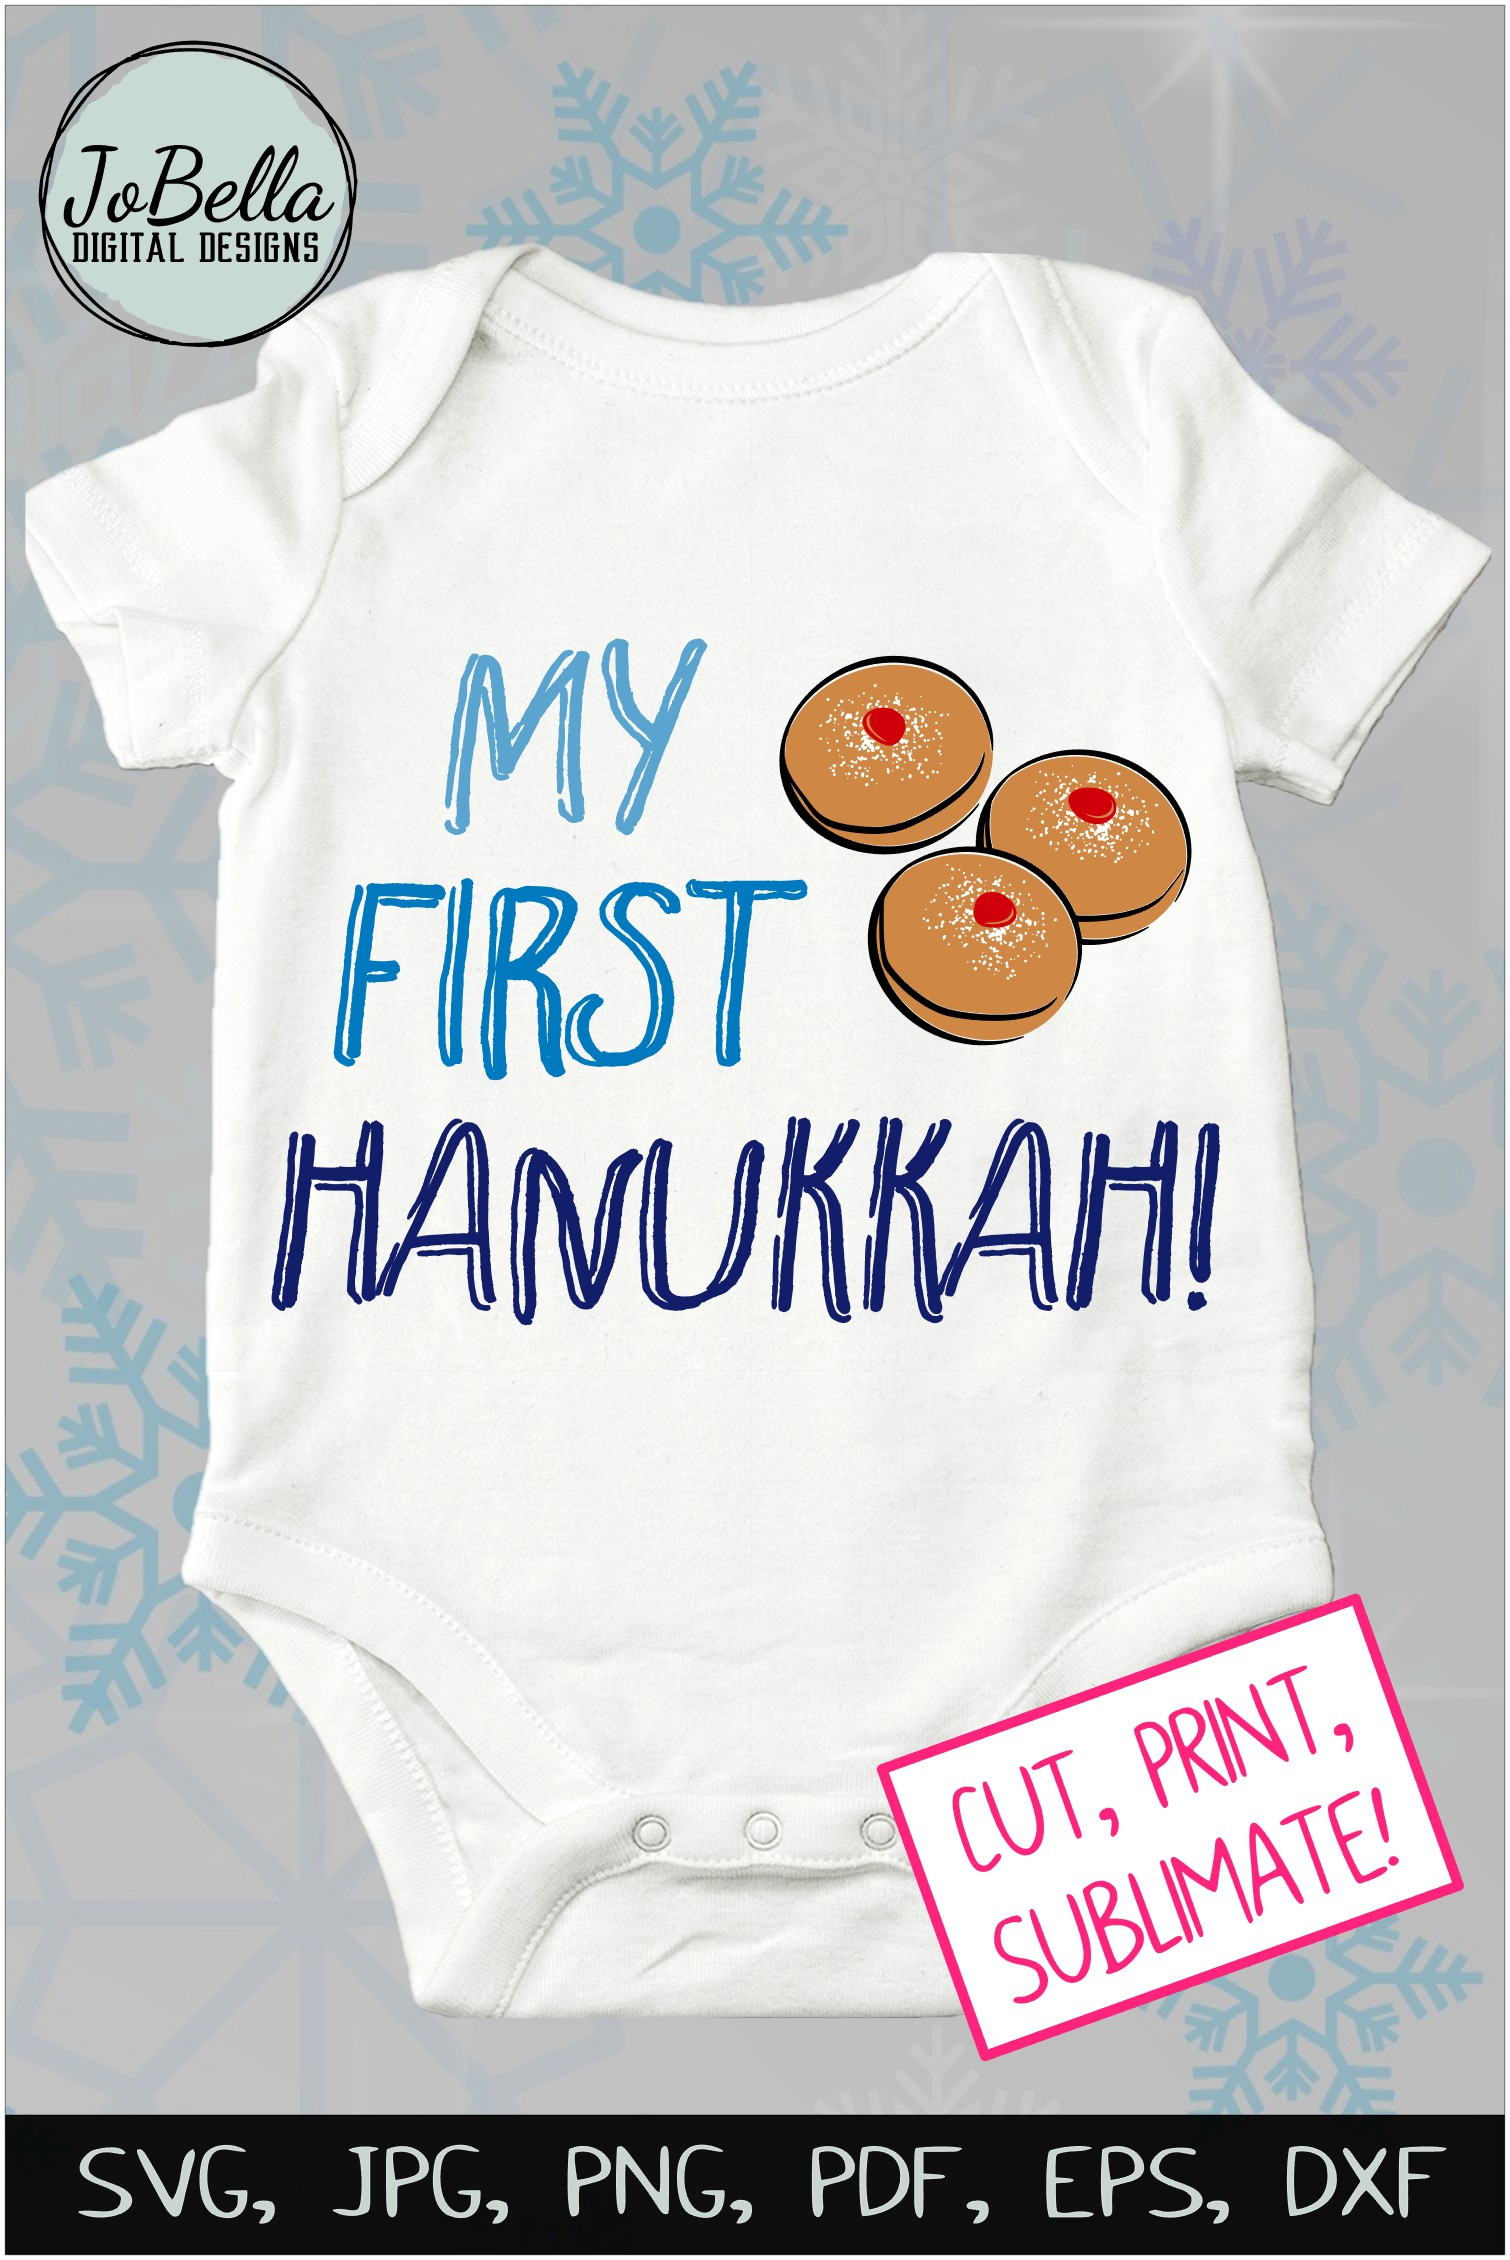 My First Hanukkah SVG, Printable and Sublimation PNG example image 3